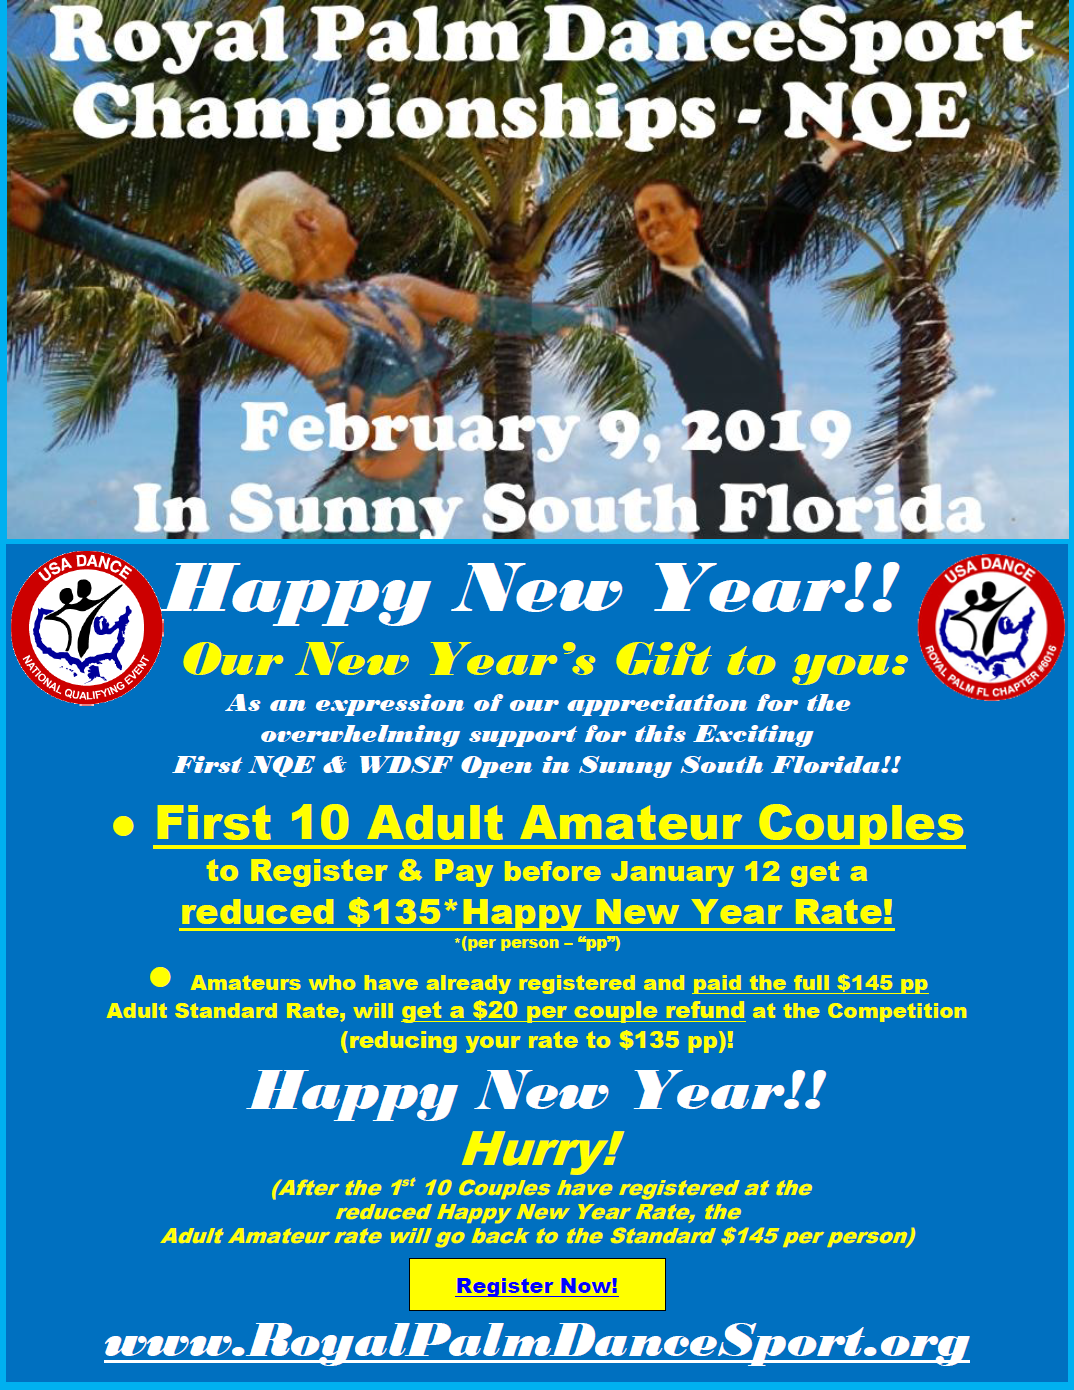 Reduced Happy New Year Rate for 1st 10 Couples! - Royal Palm DanceSport Championships